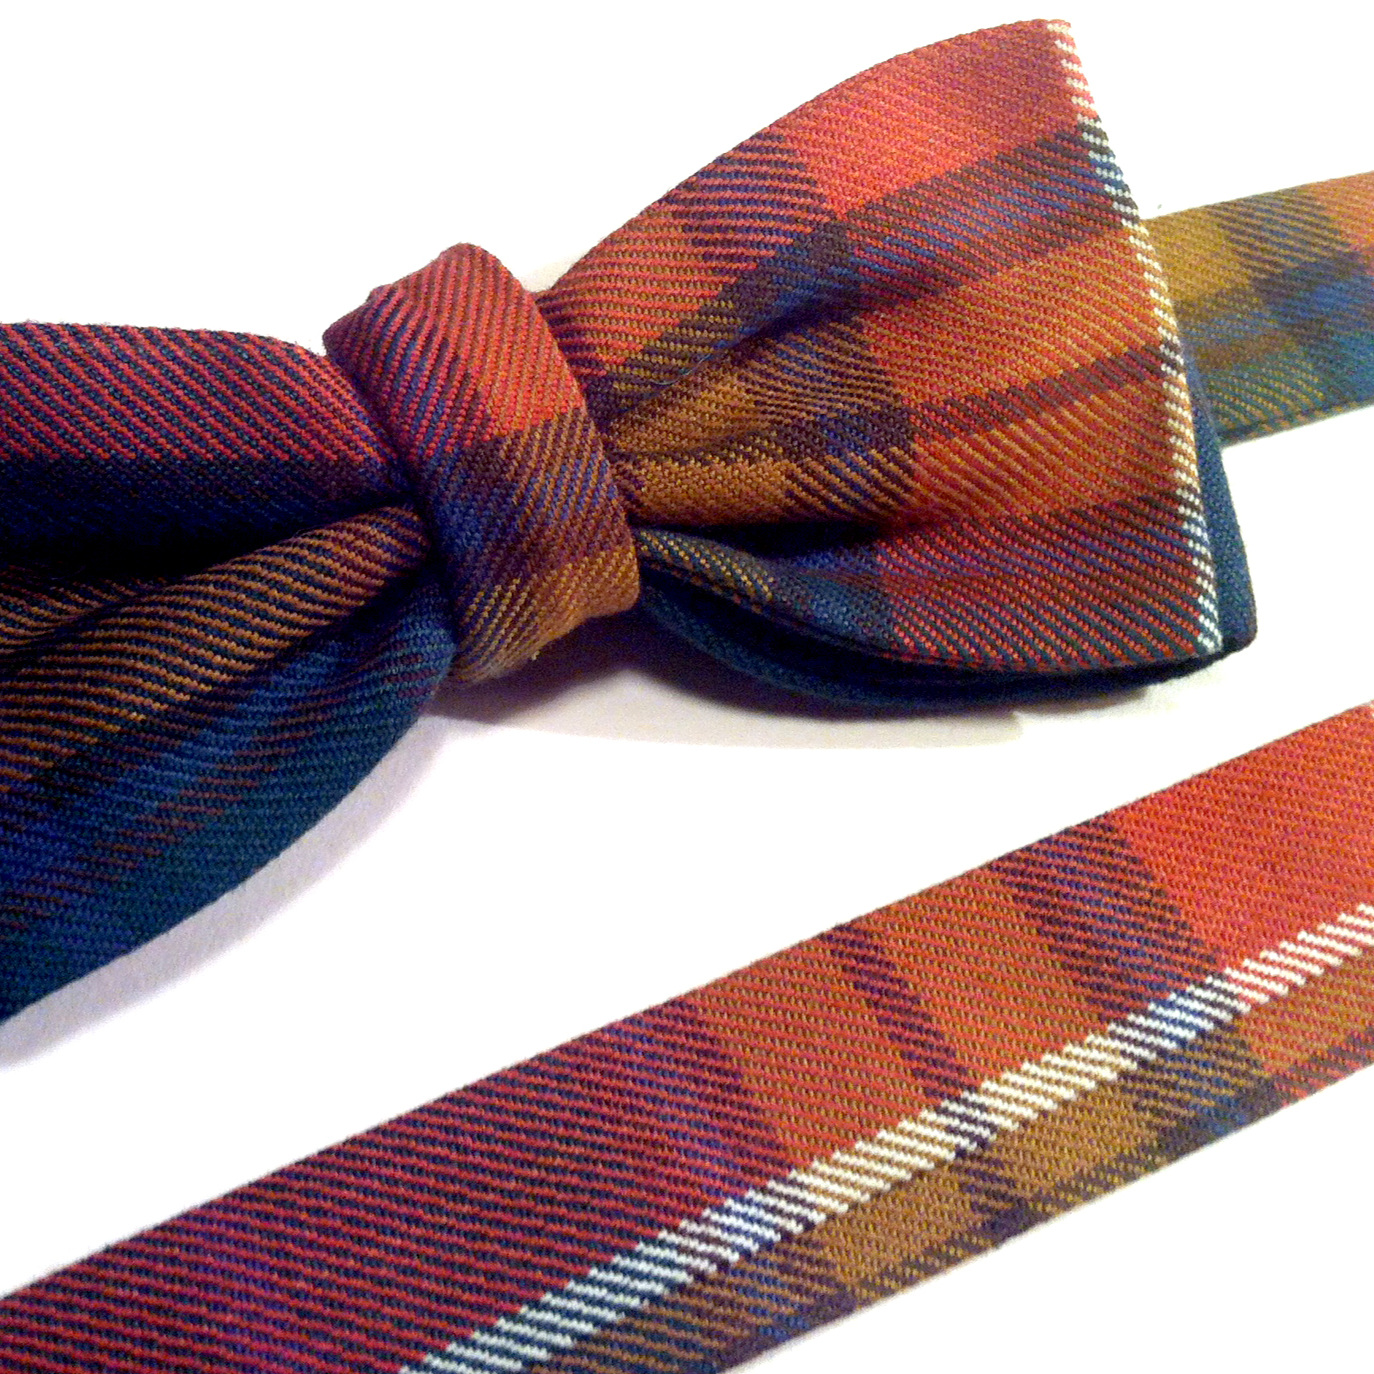 The Edinburgh Bow Tie Company